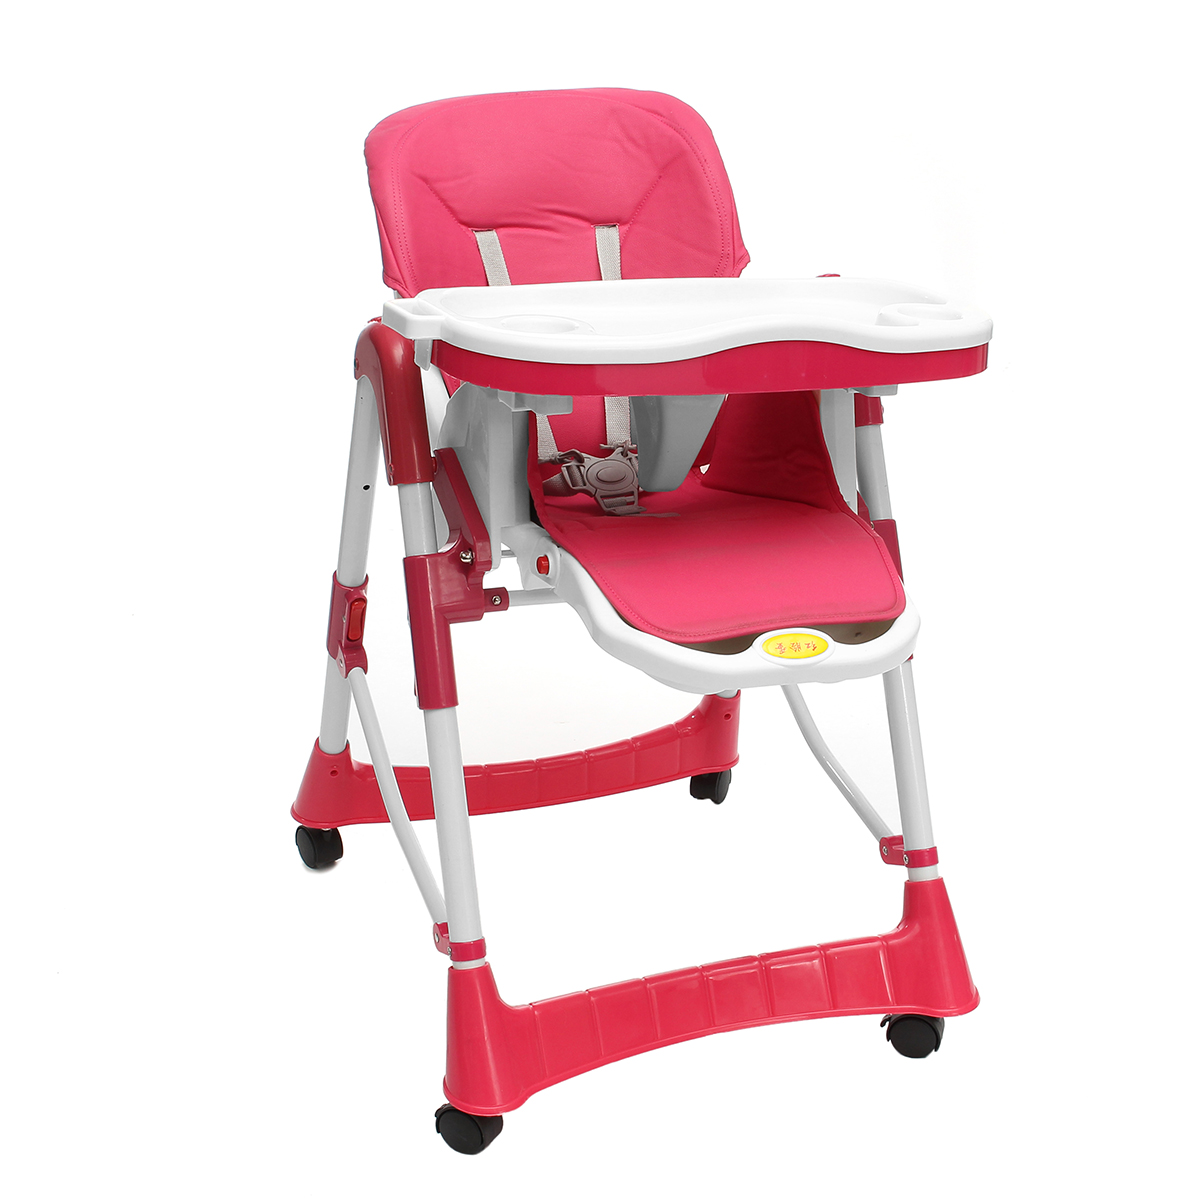 Red/Blue Baby Child High Chair Adjustable Foldable Reclinable Feeding Seatbelts 4 Wheels